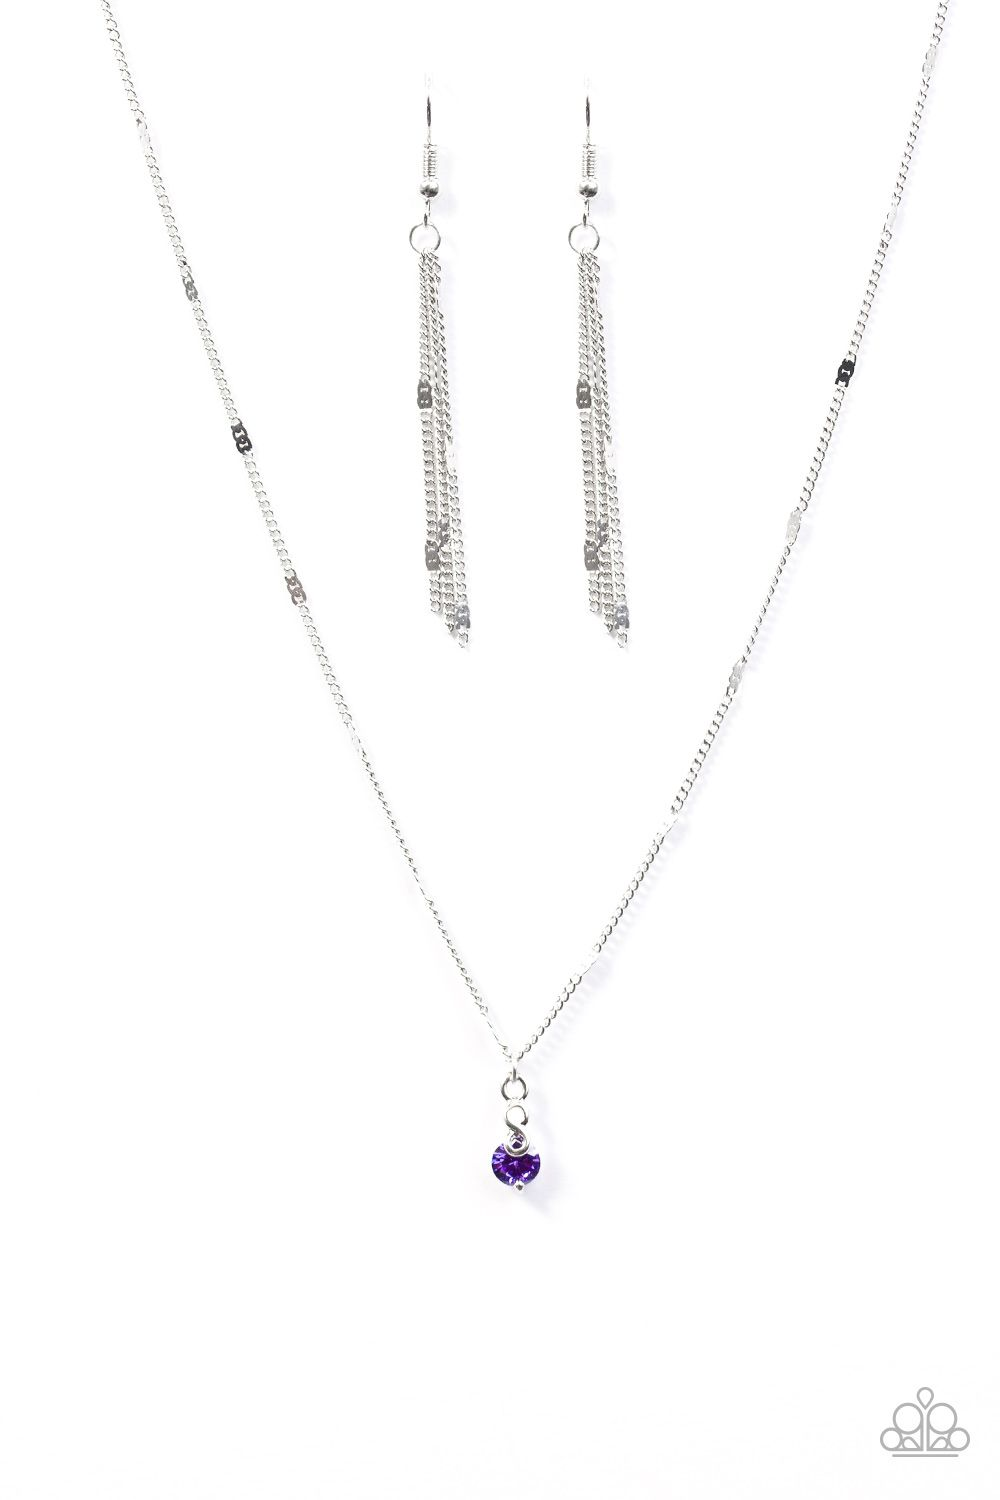 Paparazzi Accessories- Everything is $5! All jewelry is nickel and lead free. New inventory added daily Mon.- Fri. If you see a piece that you love buy it because it might not be there again. Find this and other jewels at https://paparazziaccessories.com/84702/ Forever Sparkle - Purple